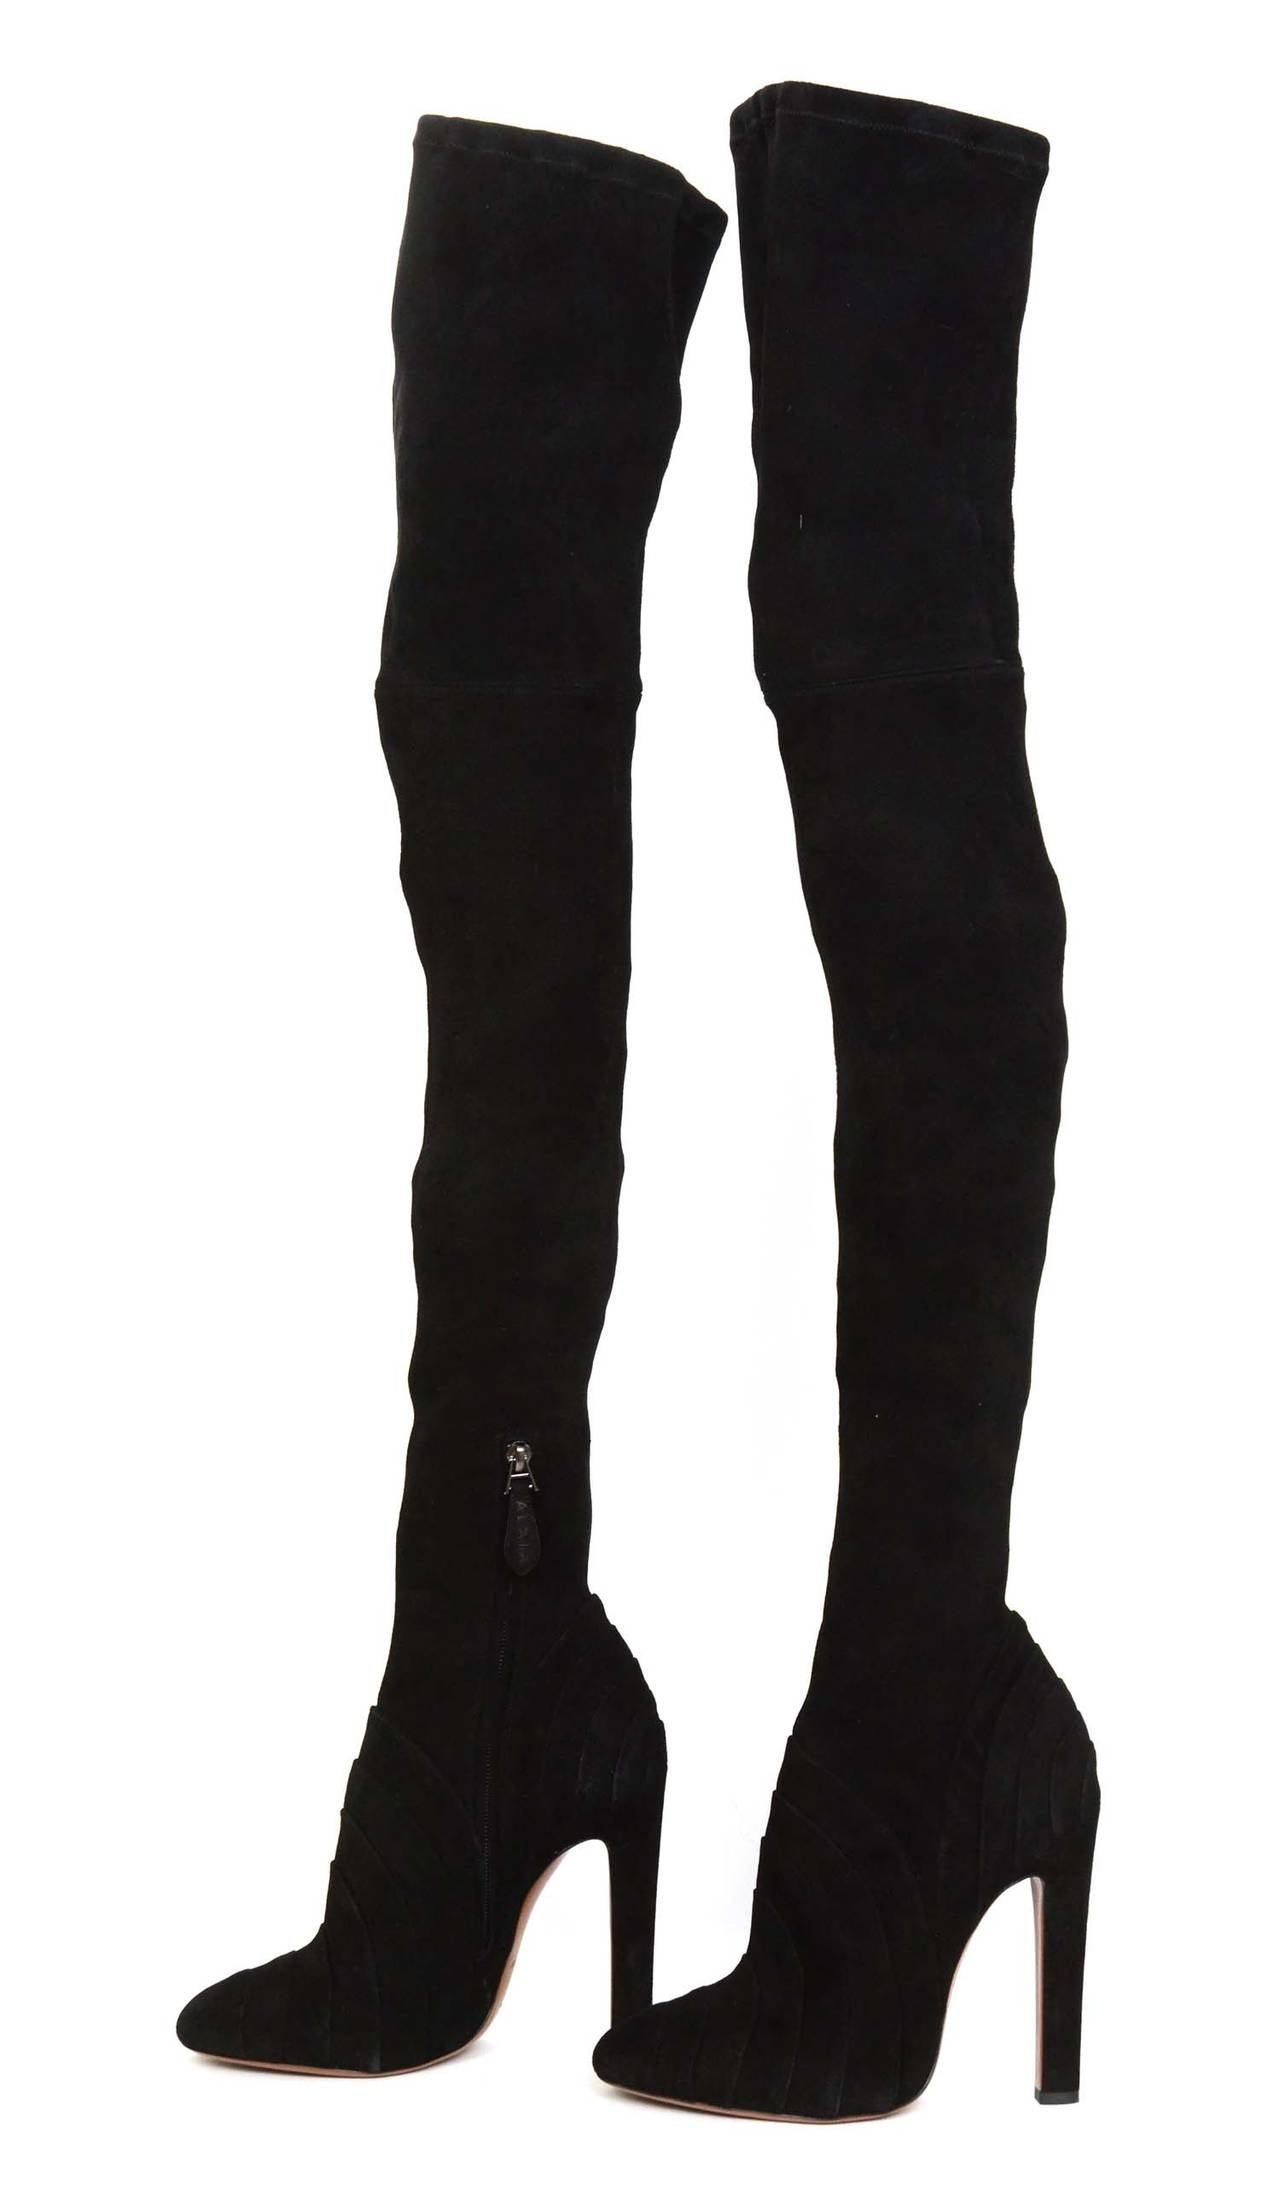 alaia black stretch suede the knee boots sz 40 rt